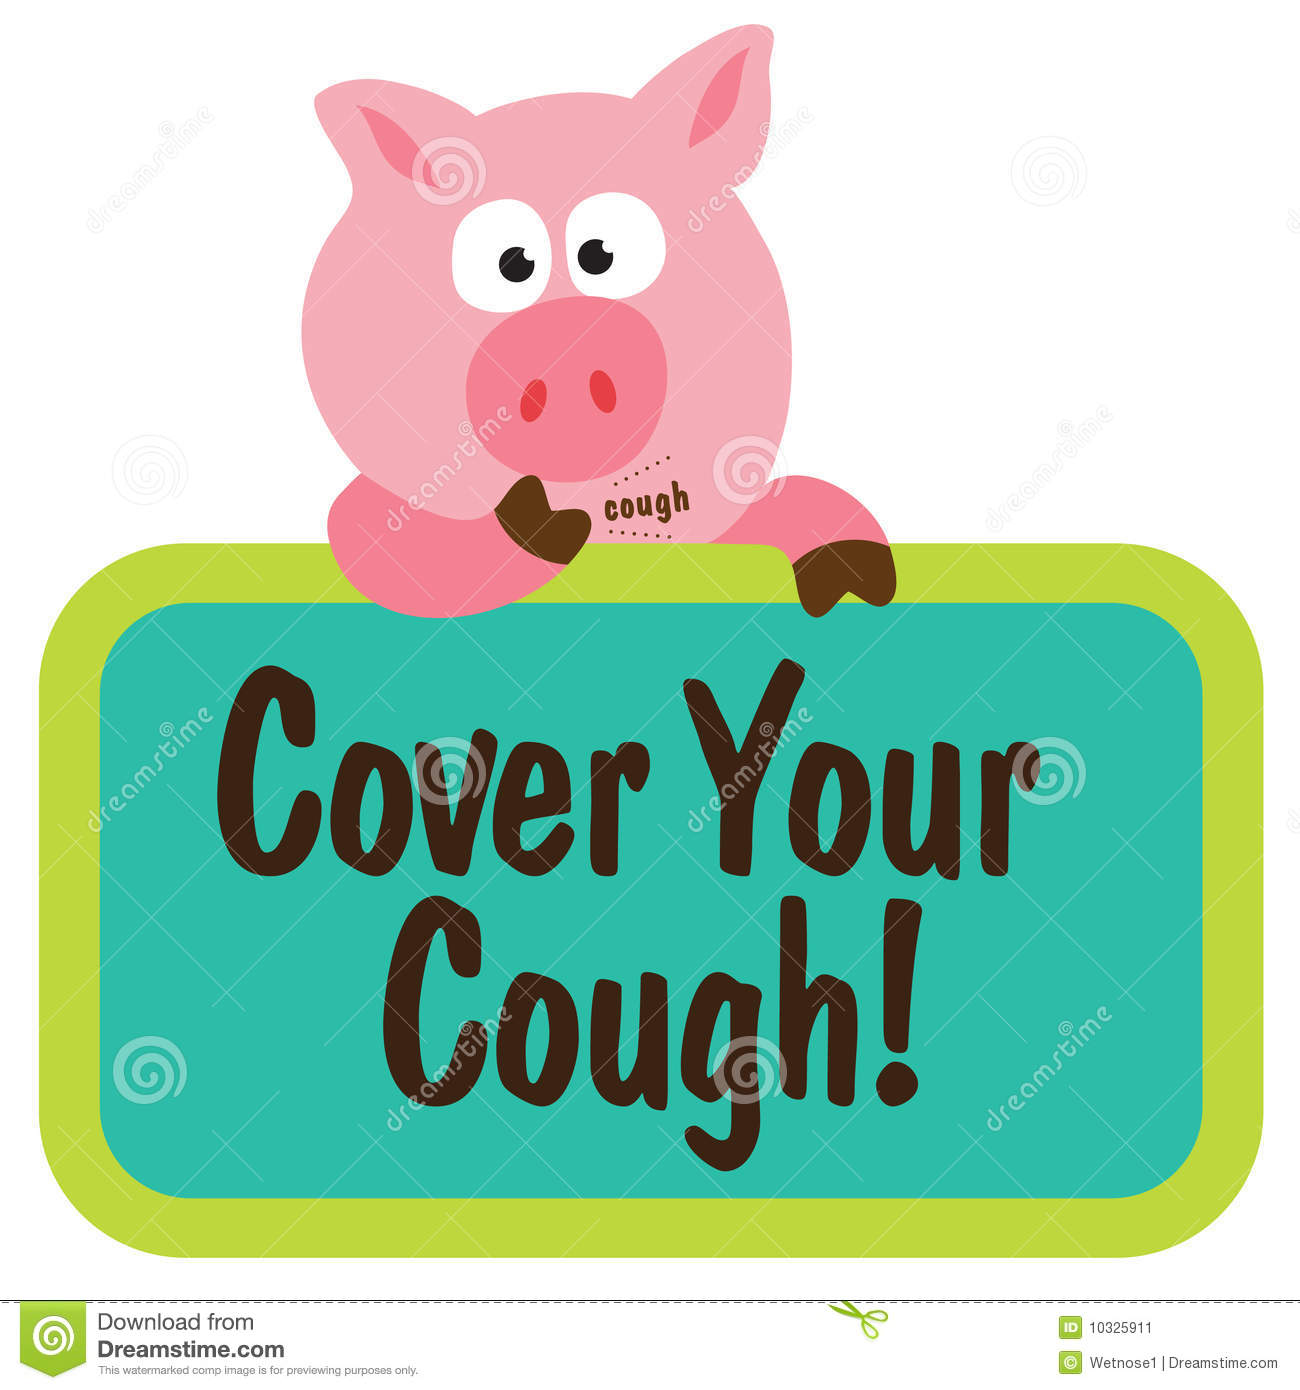 Cover your cough clipart jpg transparent stock Cough Stock Illustrations – 1,330 Cough Stock Illustrations ... jpg transparent stock